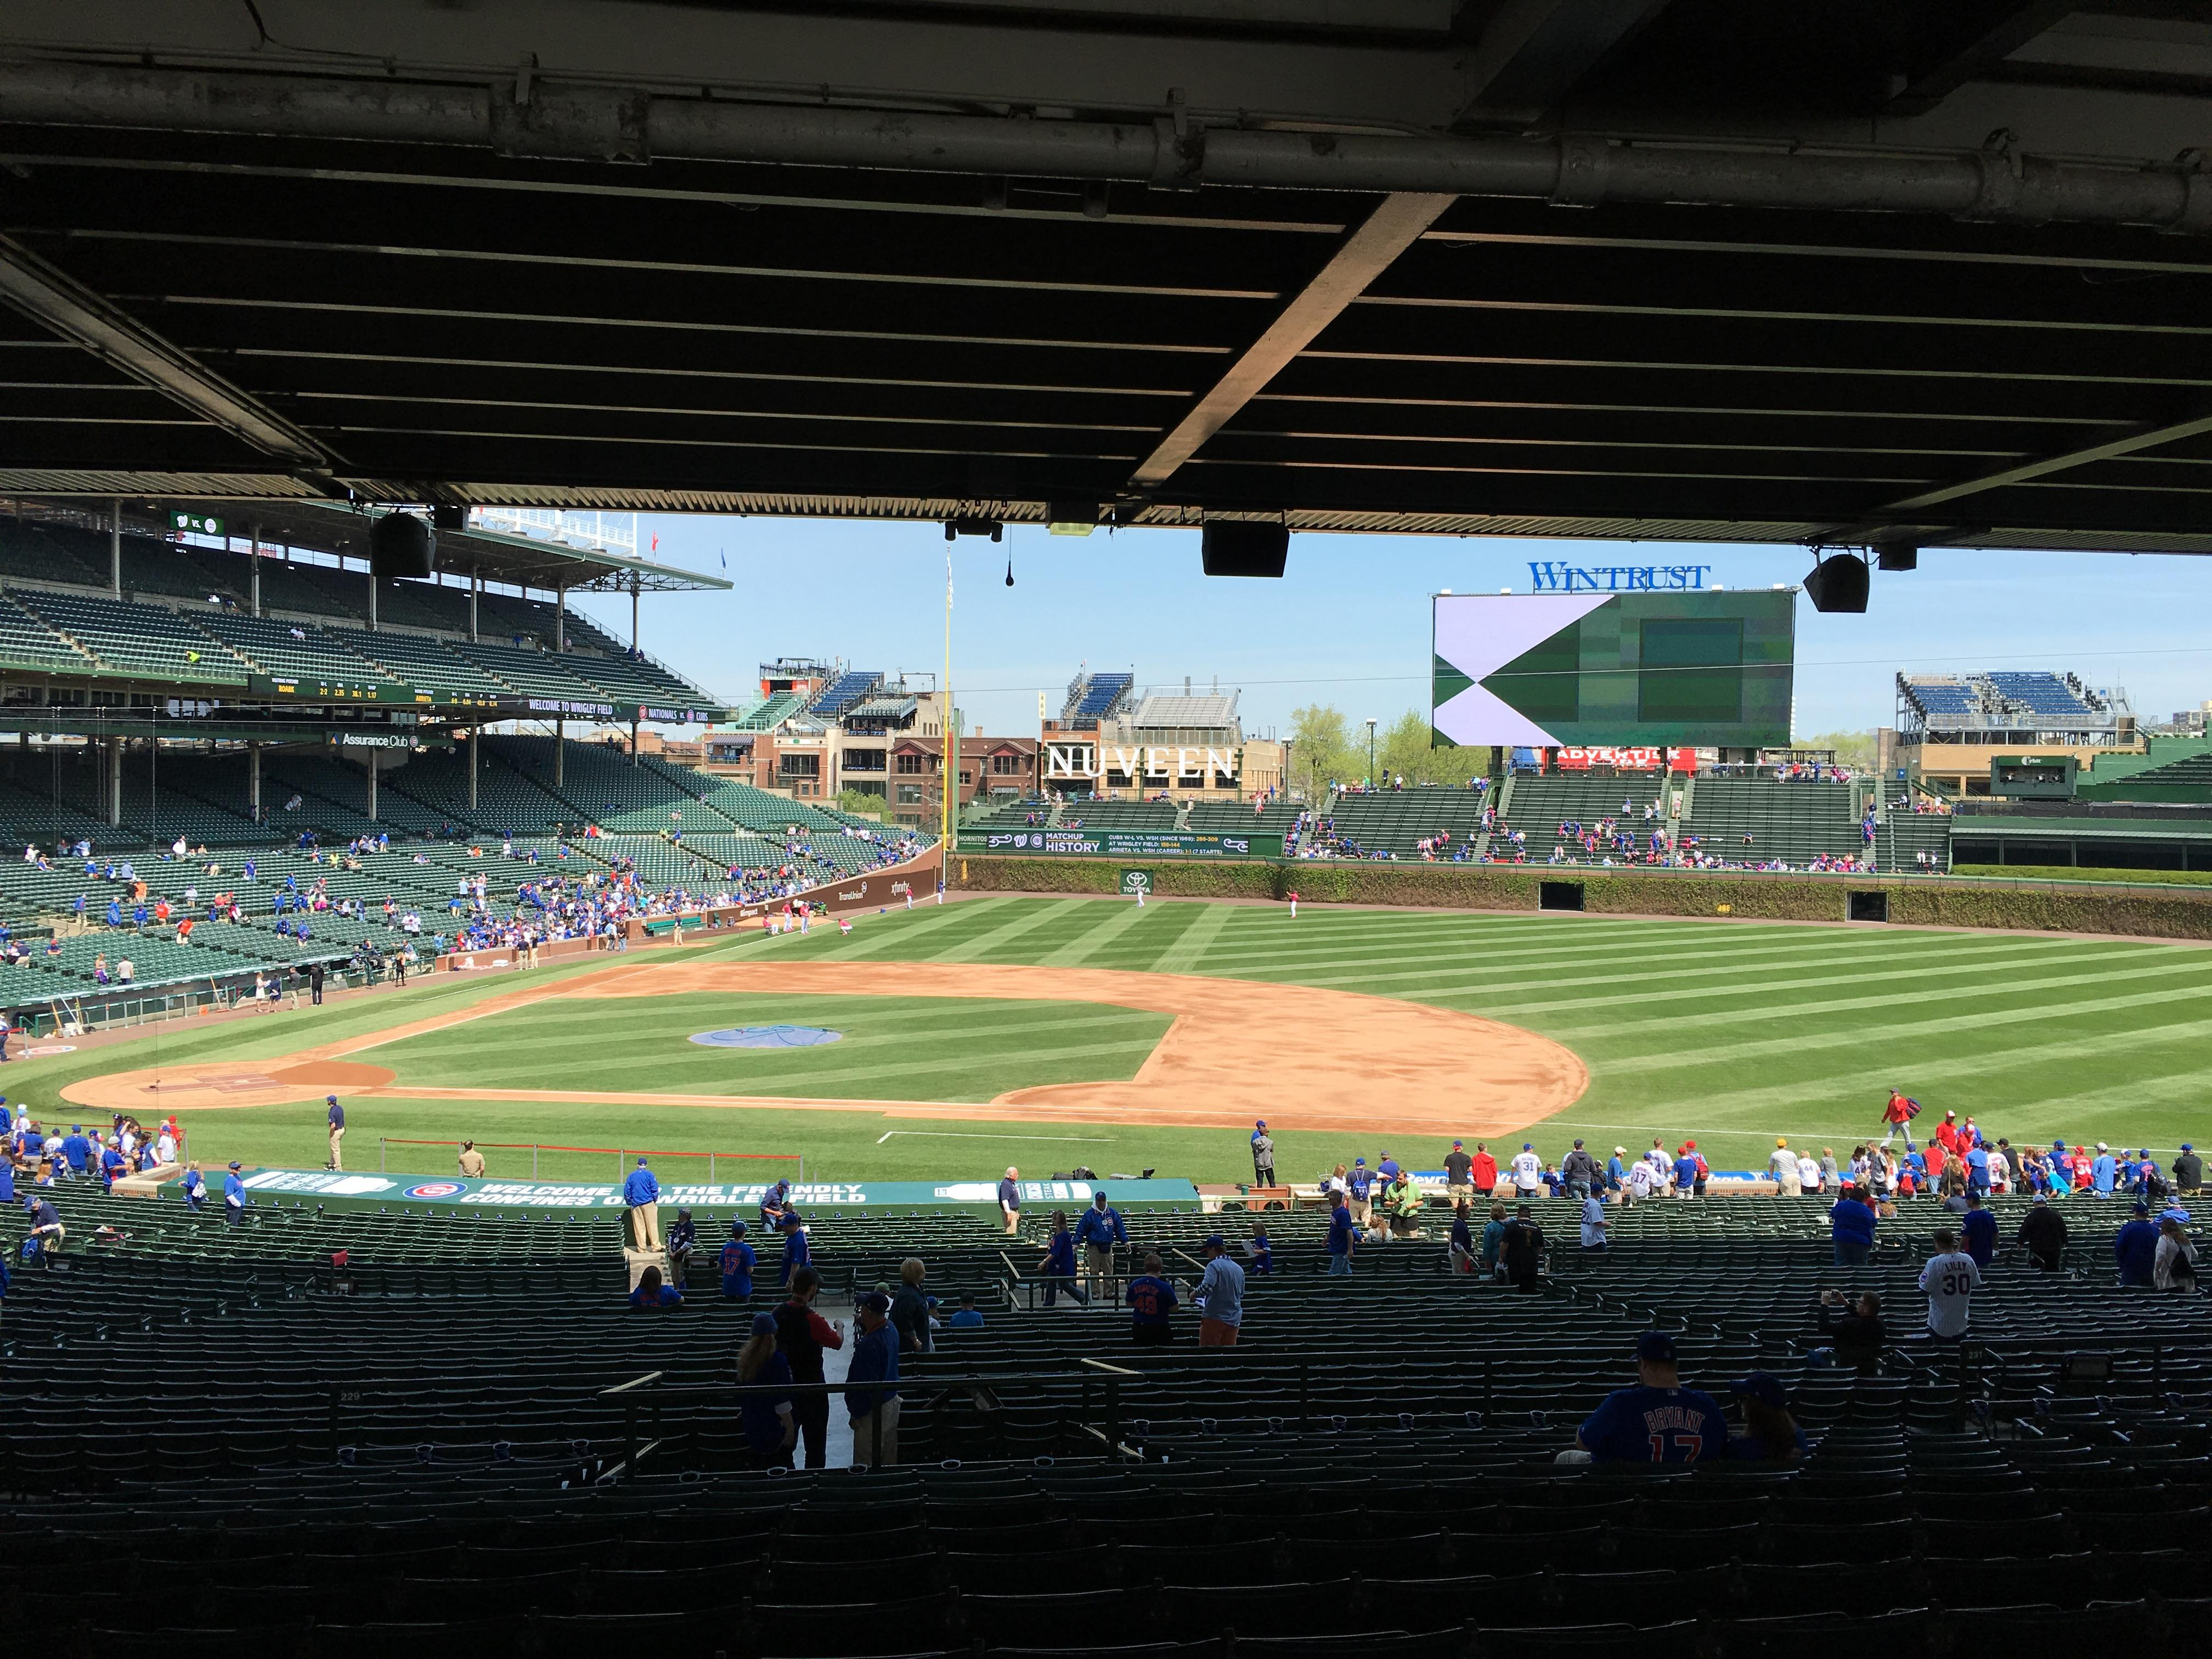 Wrigley Field section 229 row 16 seat 10 Chicago Cubs vs